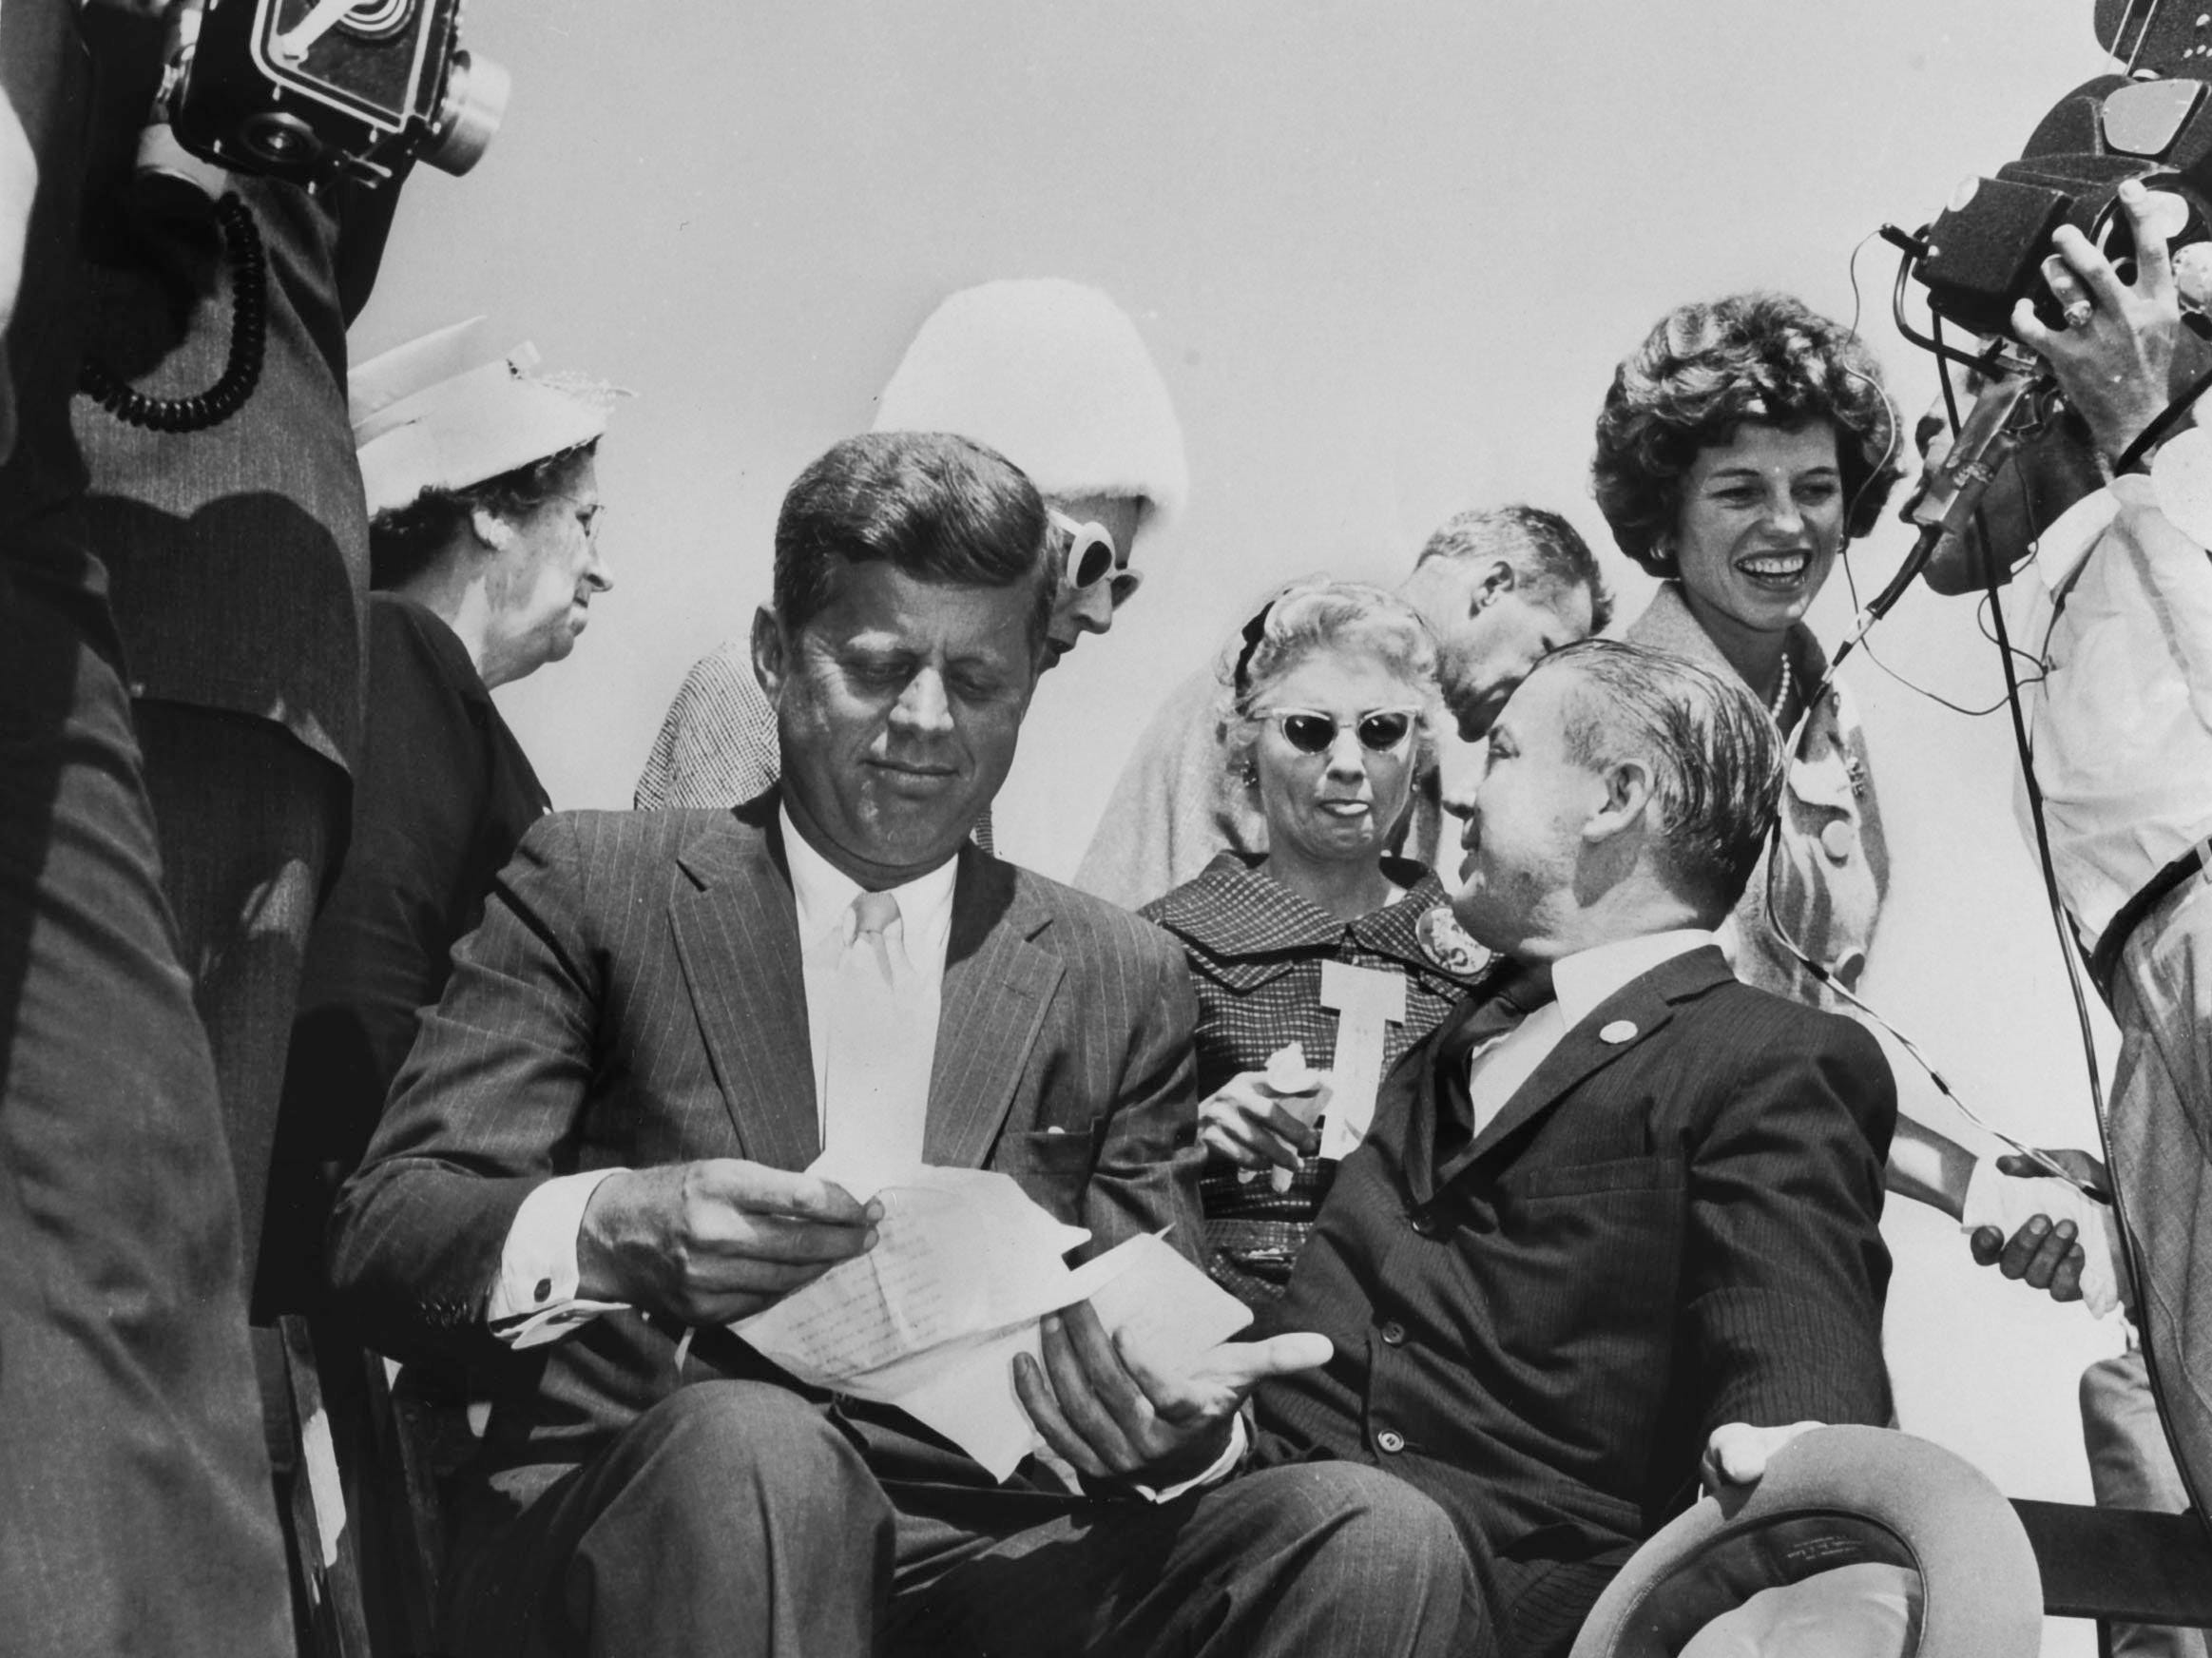 In a Sept. 21, 1960, photograph, Democratic Presidential nominee John F. Kennedy, with U.S. Rep. Joe L. Evins, prepares to speak during a campaign appearance at McGhee Tyson Airport. Standing at right is Kennedy's sister, Eunice Kennedy Shriver.